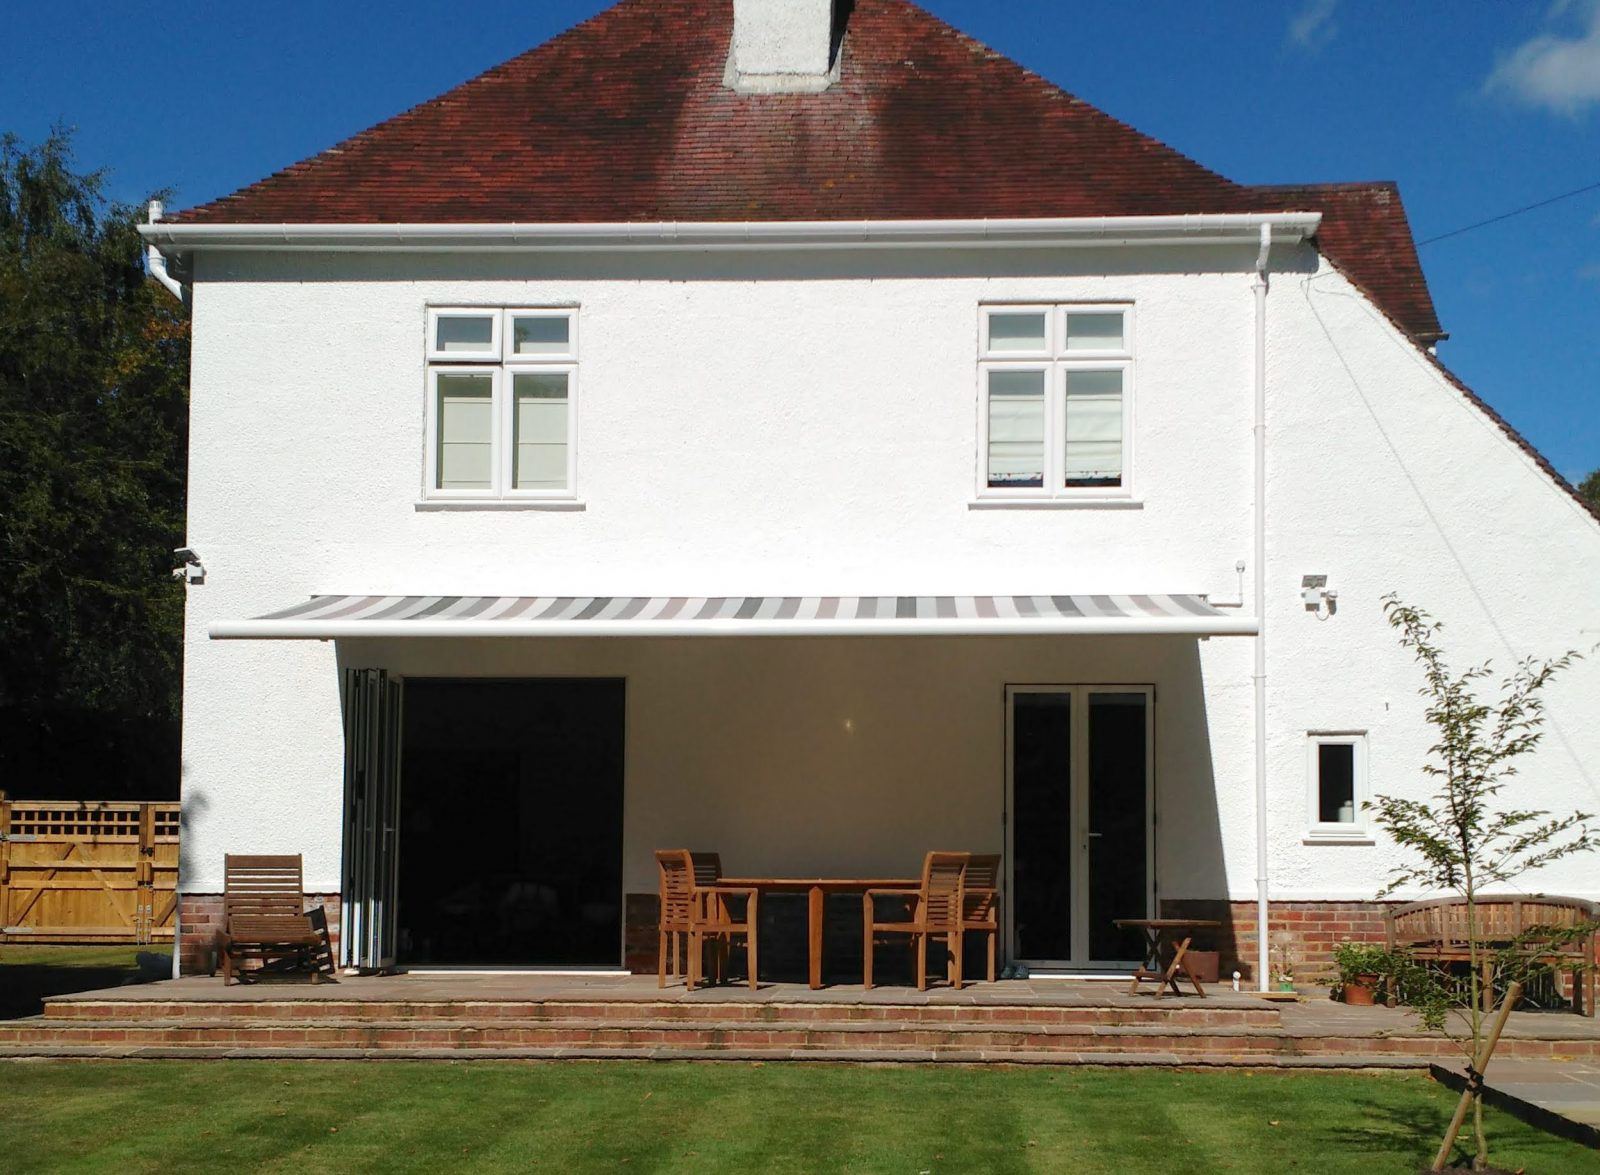 Markilux 6000 Awning Fitted by The Electric Blind Company